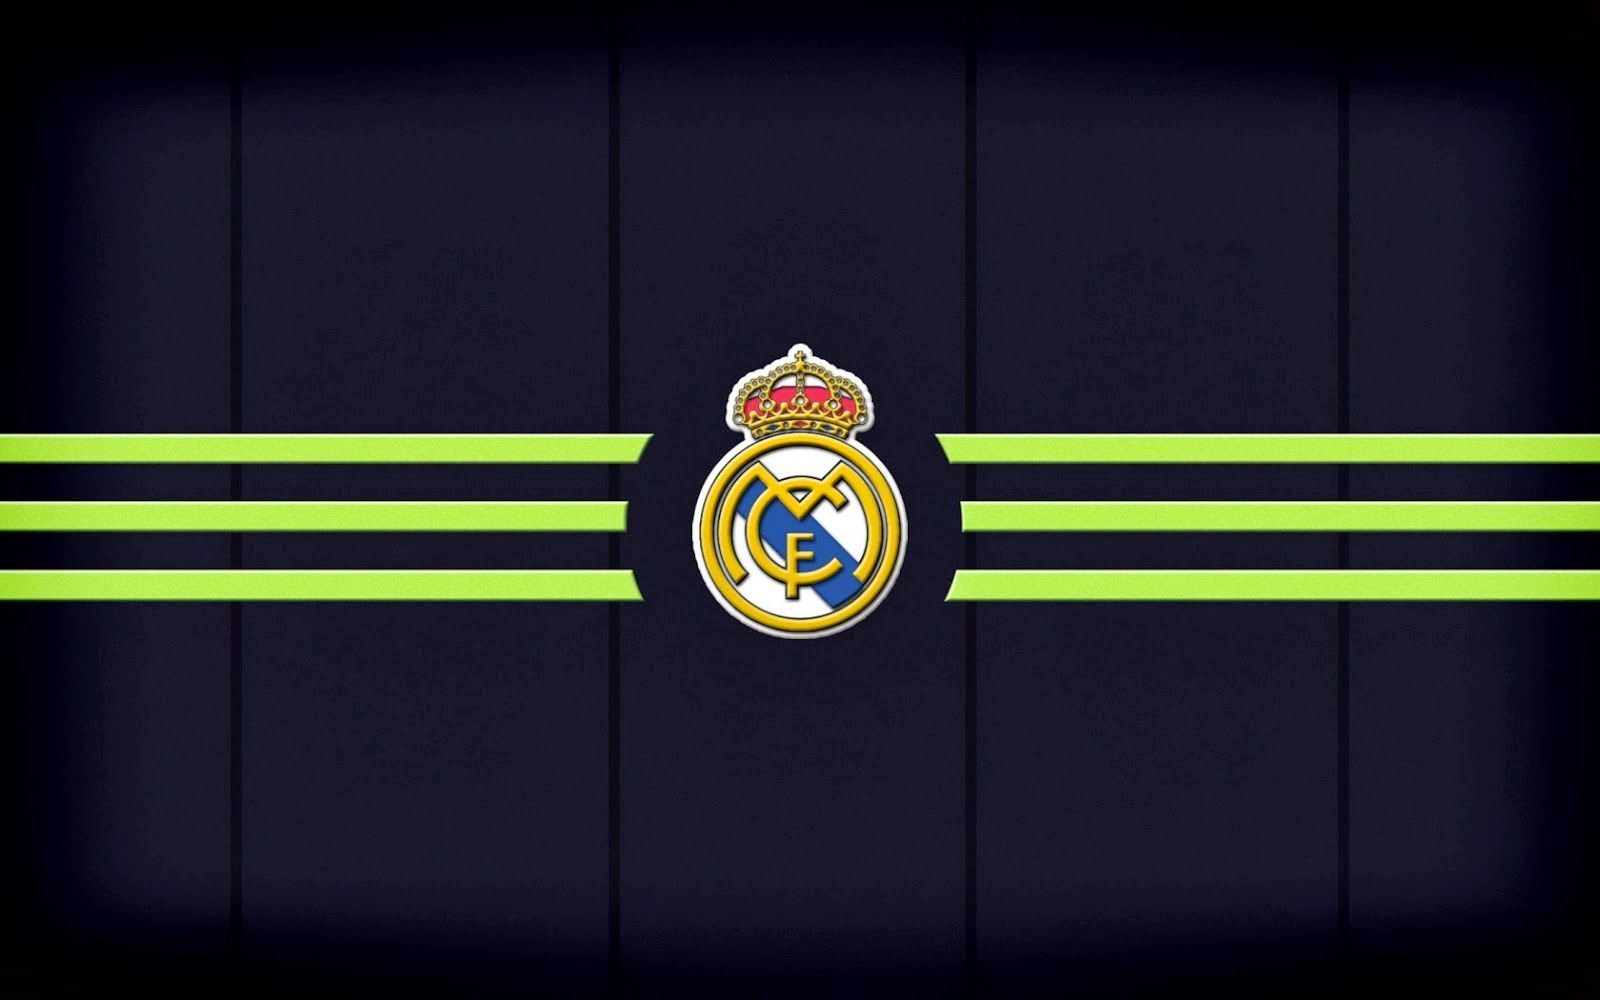 Full Hd P Real Madrid Wallpapers Hd Desktop Backgrounds 1600 1000 Image Real Madrid Wallpapers